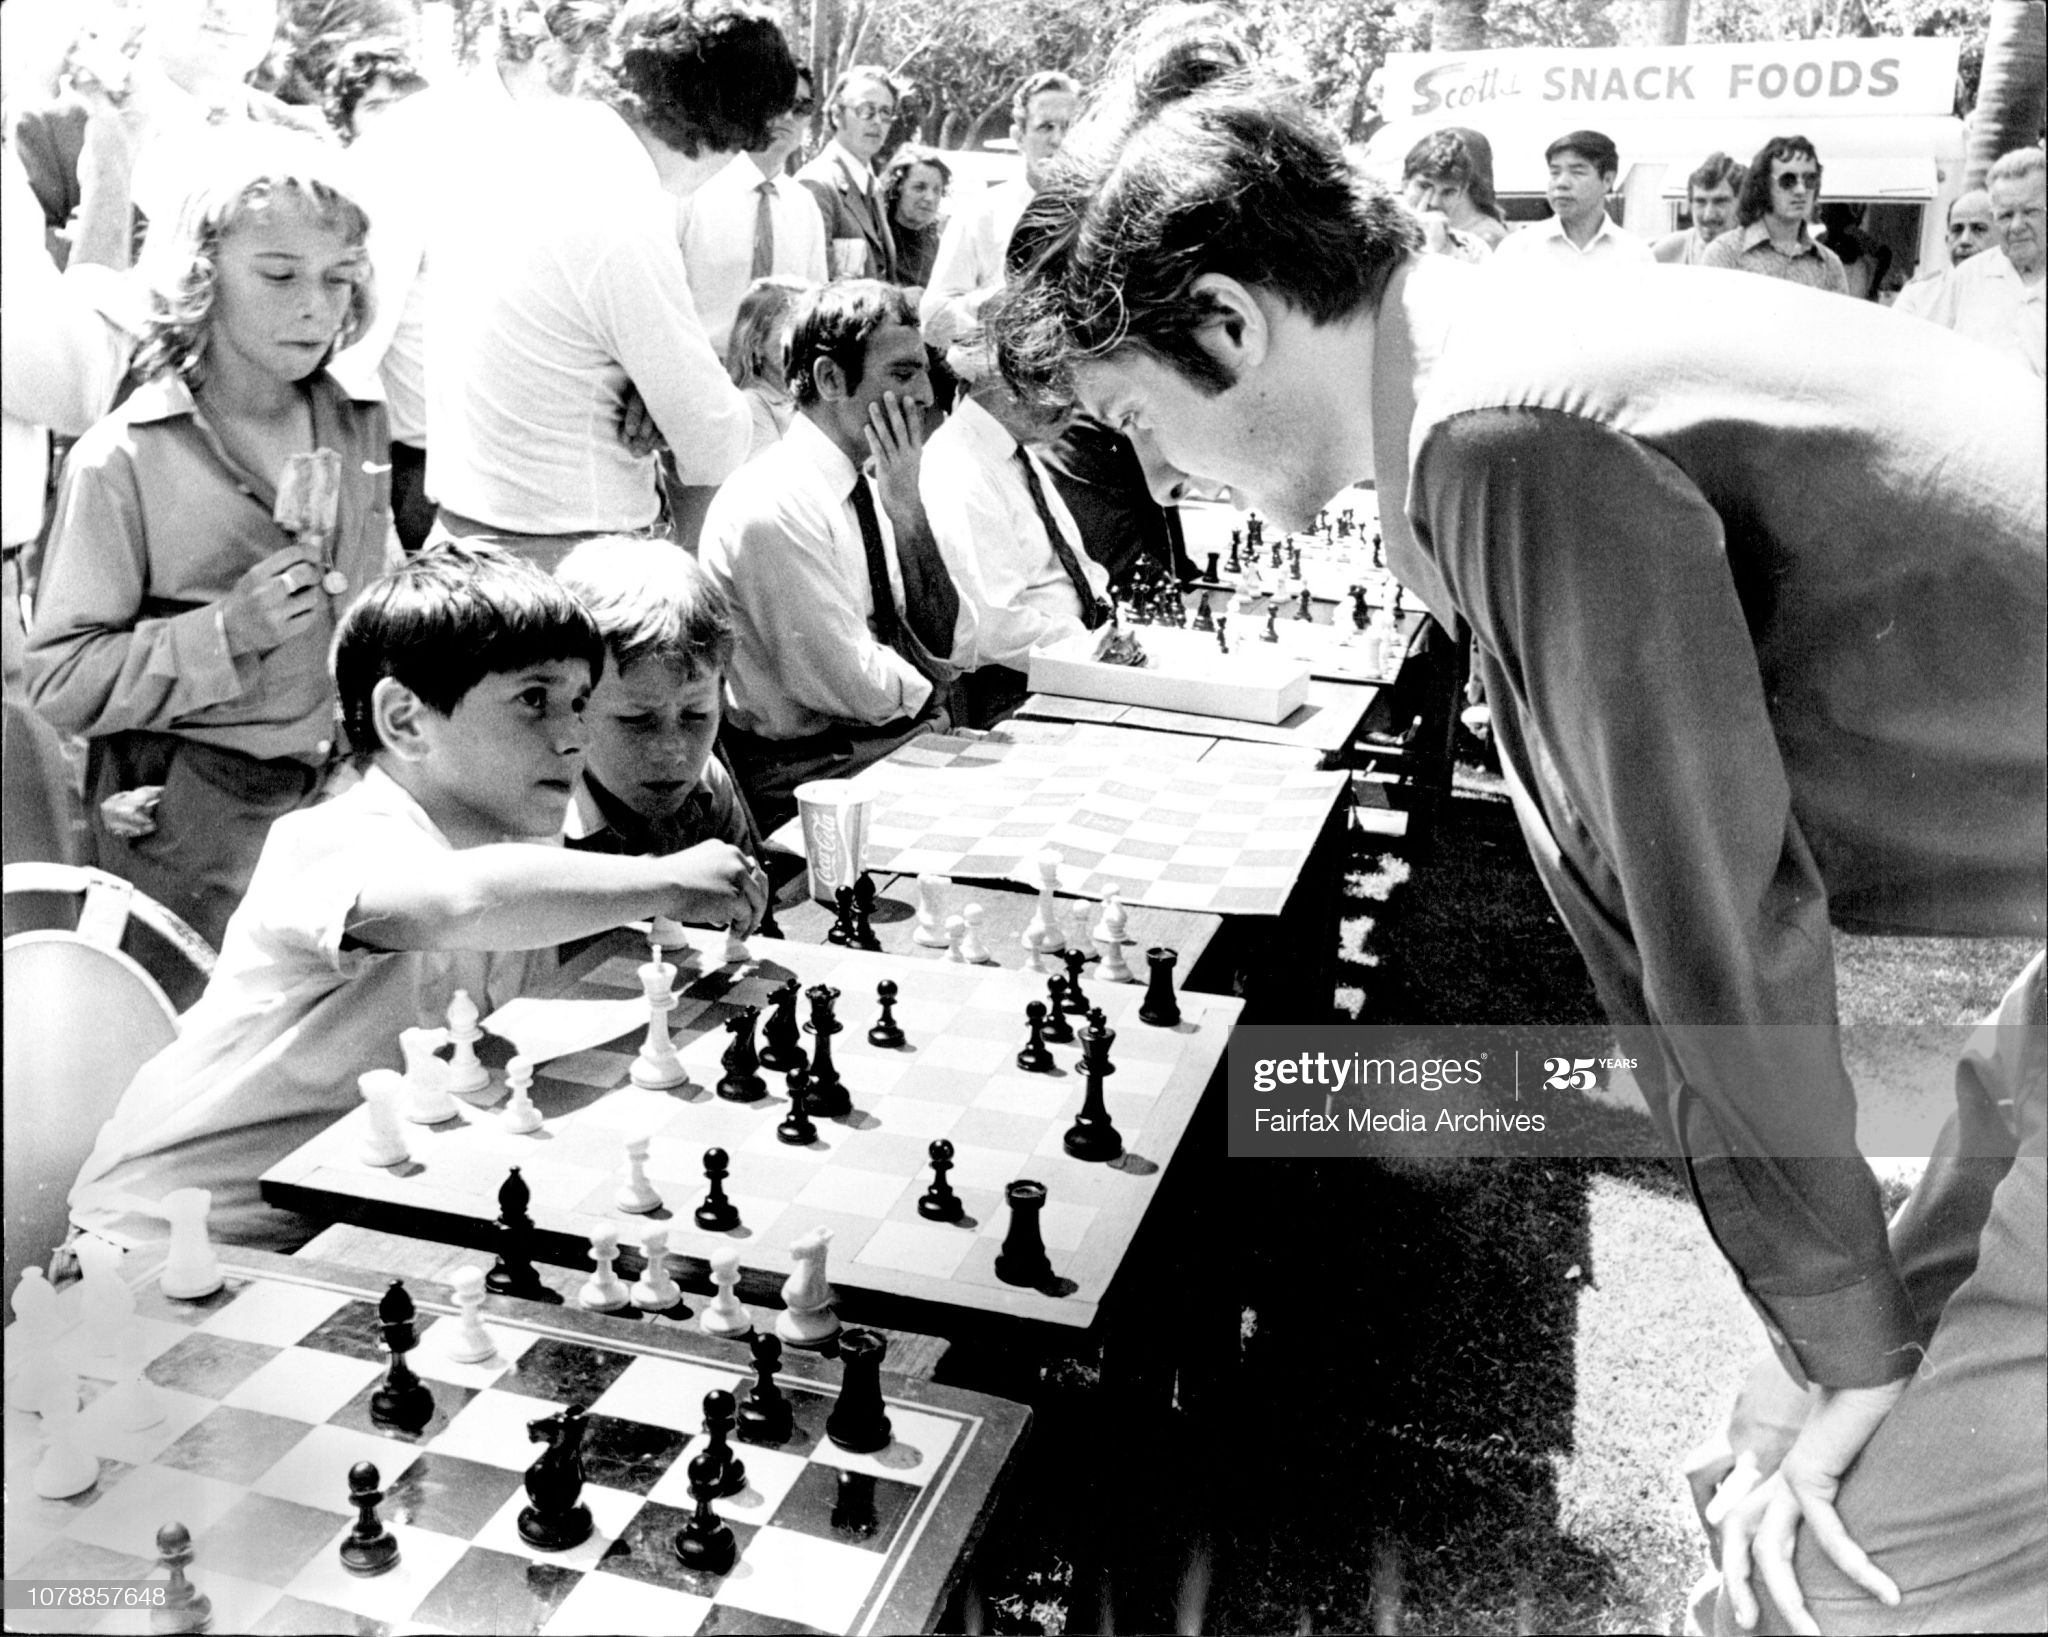 Aleandro Trimboli (10) of Leichhardt plays Mr Max Fuller of Newtown, Australian Open Chess Champion. As part of the Waratah Festival Celebrations the NSW Chess Association is conducting chess games with chess champions playing up to 30 players at once, in Hyde Park. October 17, 1973. (Photo by Golding/Fairfax Media via Getty Images).